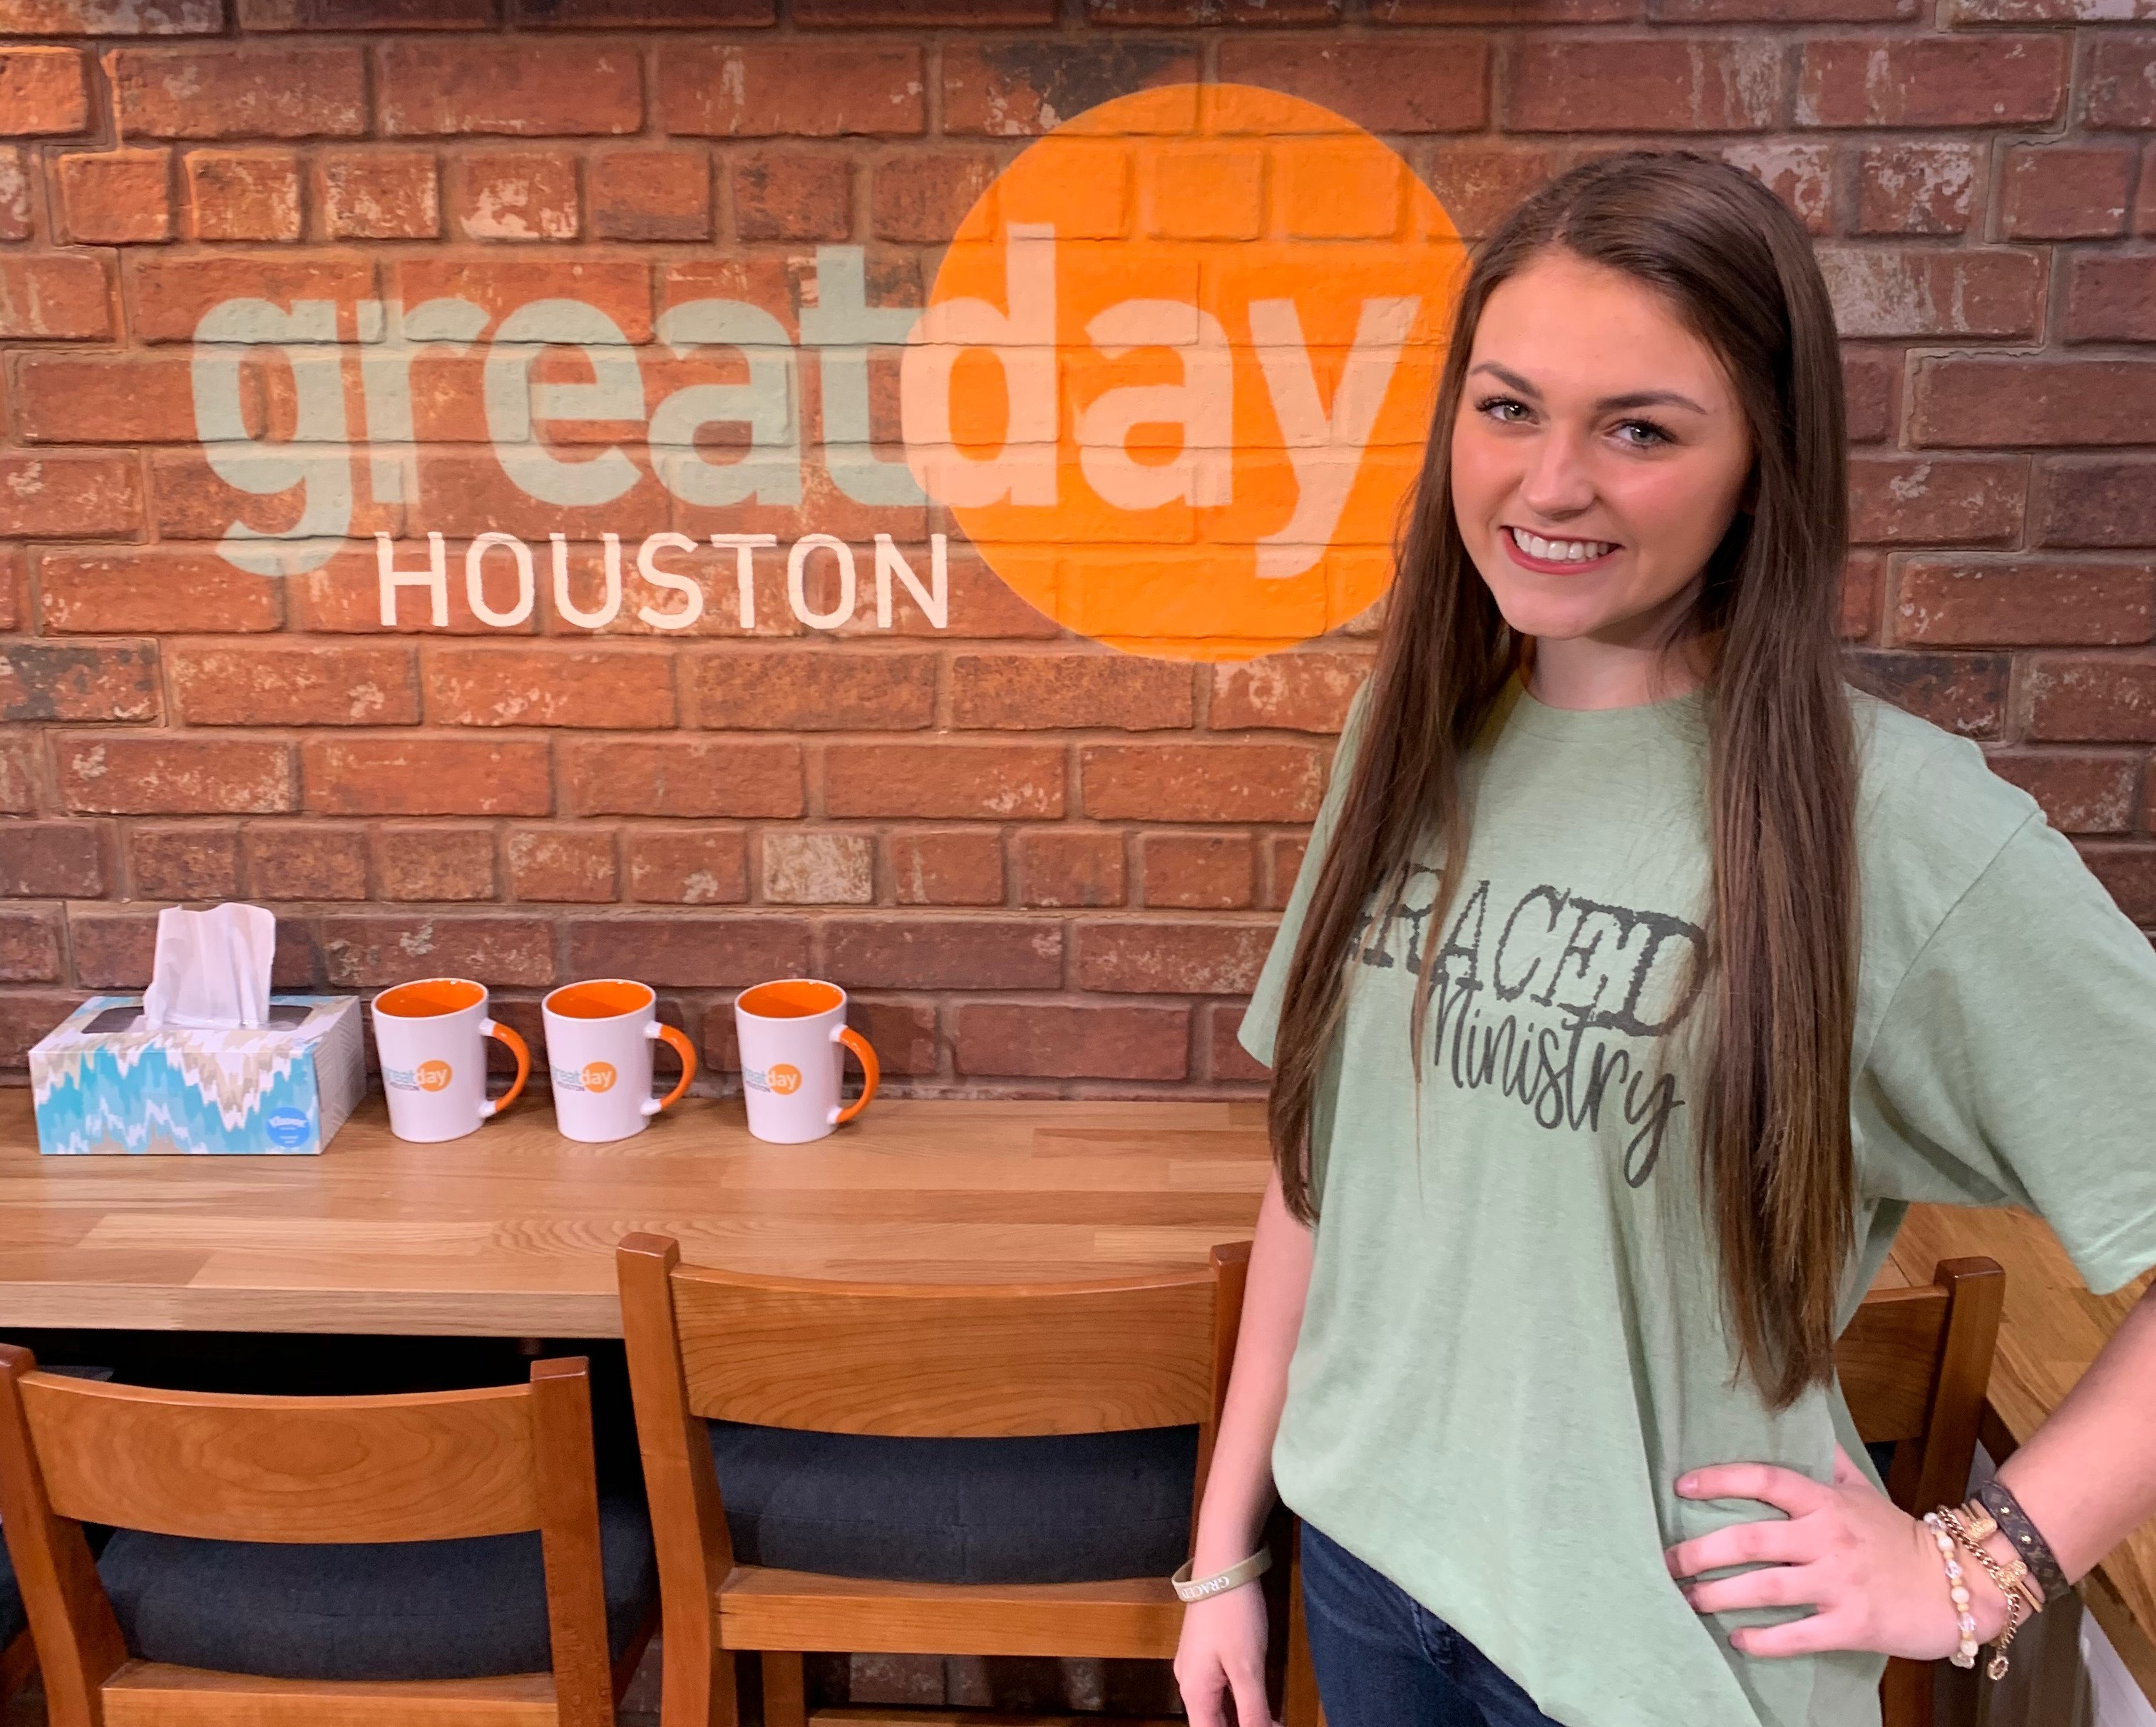 Koedi Nealy's Graced Ministry Appears on Great Day Houston